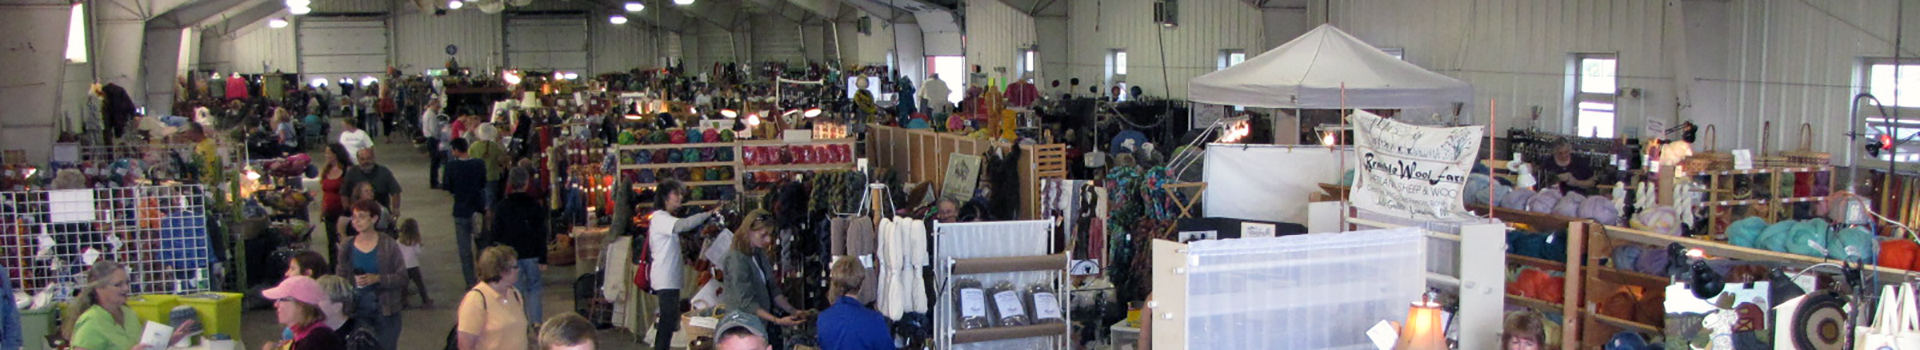 wisconsin sheep wool festival country store and vendors